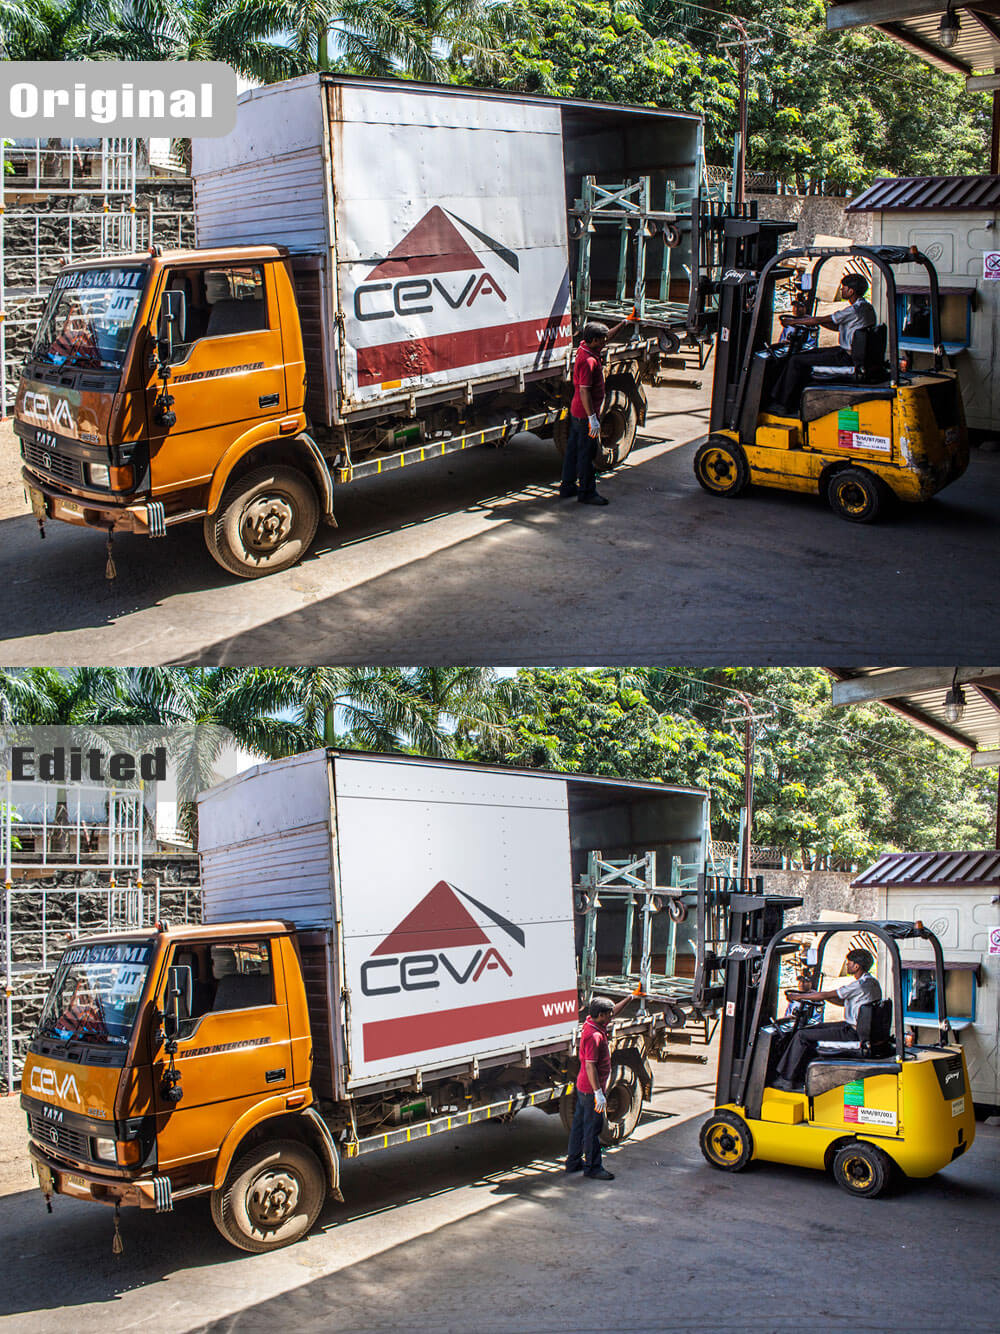 Fork lift and truck photograph Editing